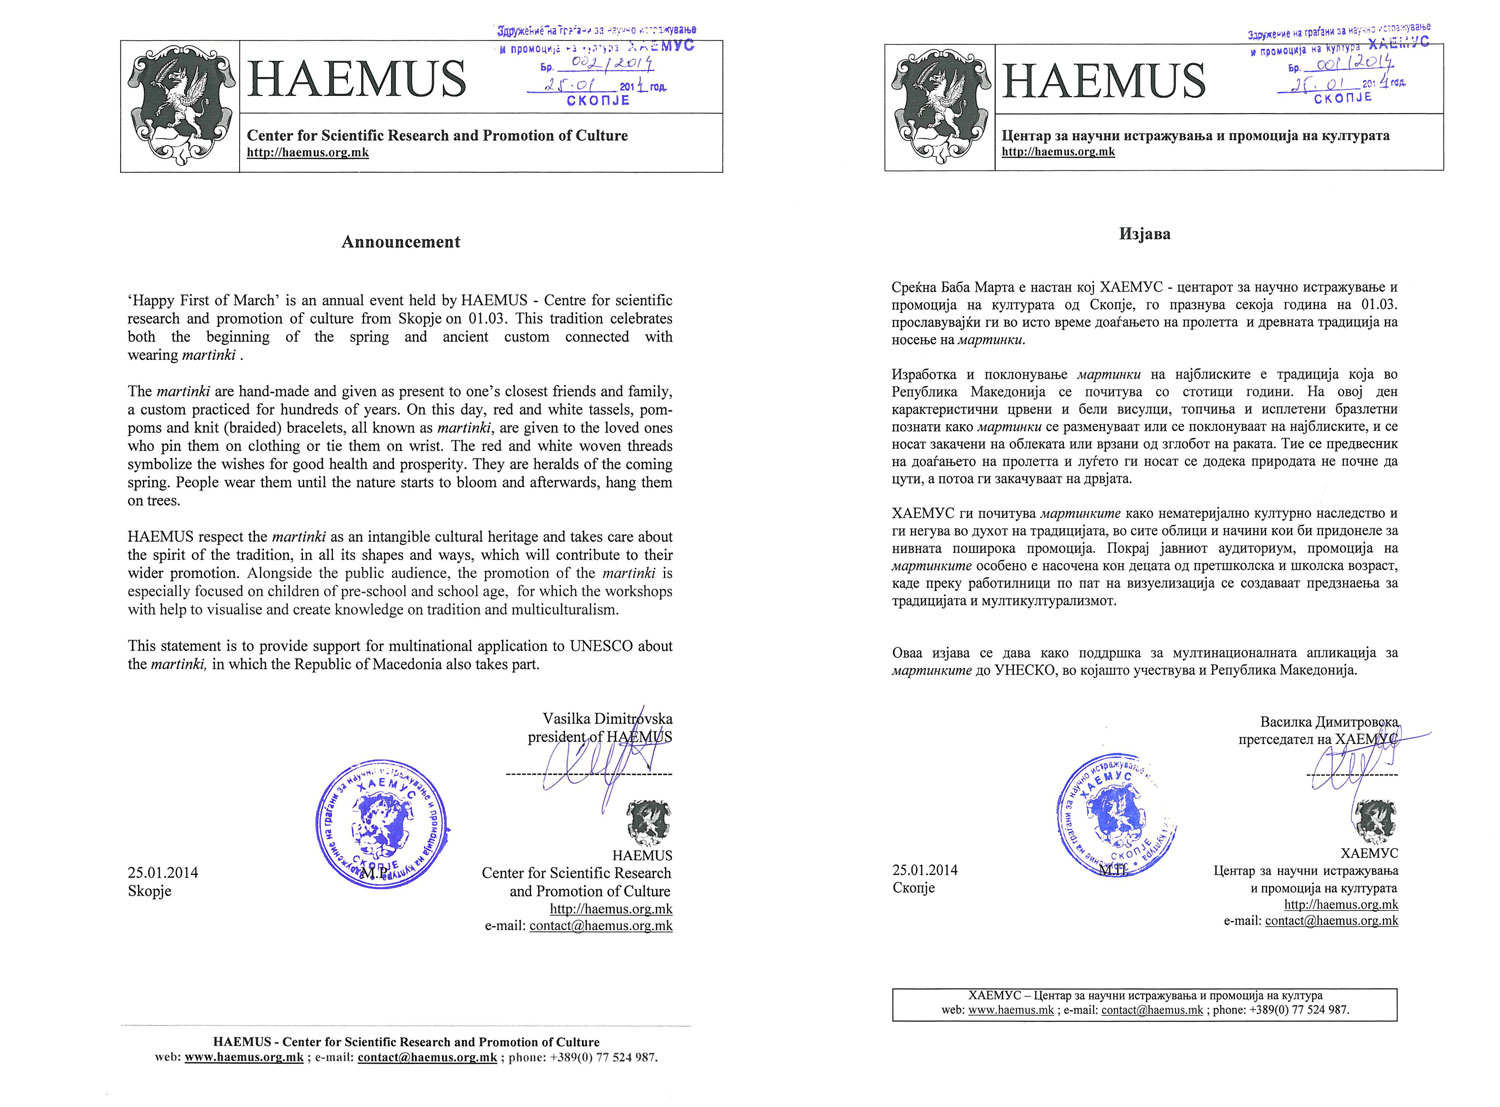 HAEMUS_UNESCO_announcement_martinki